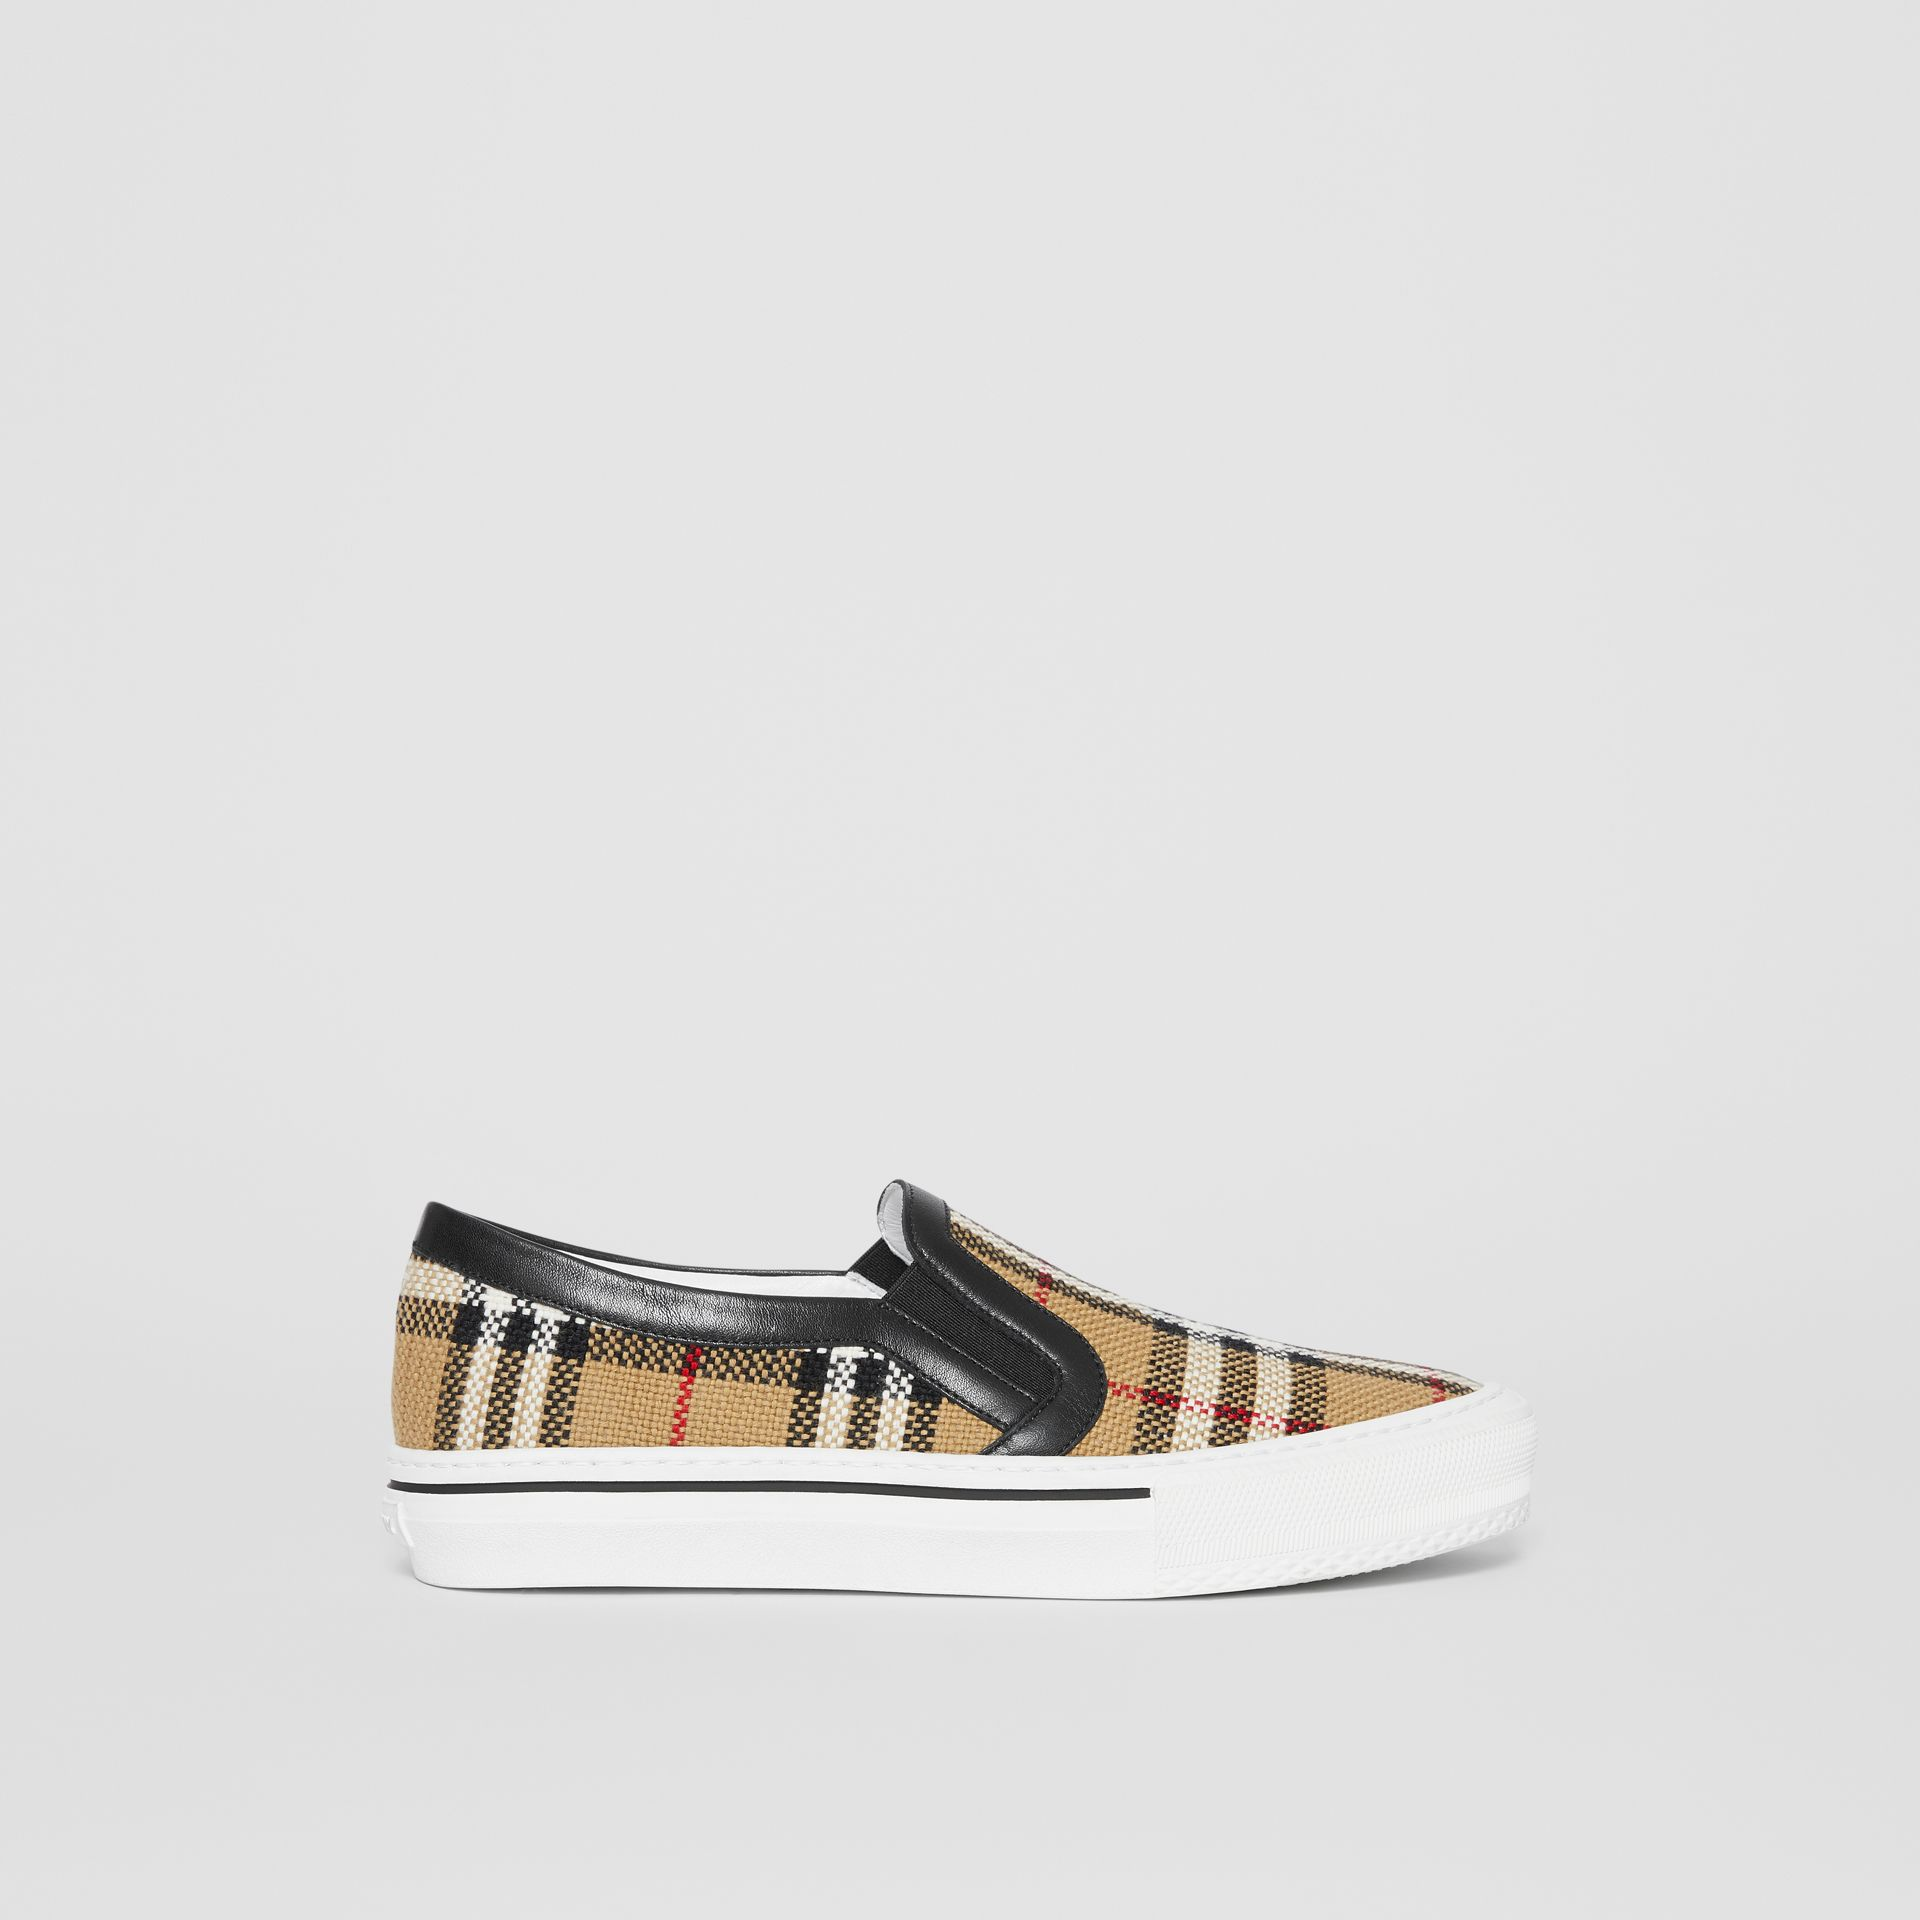 Vintage Check and Leather Slip-on Sneakers in Archive Beige - Women | Burberry Canada - gallery image 5